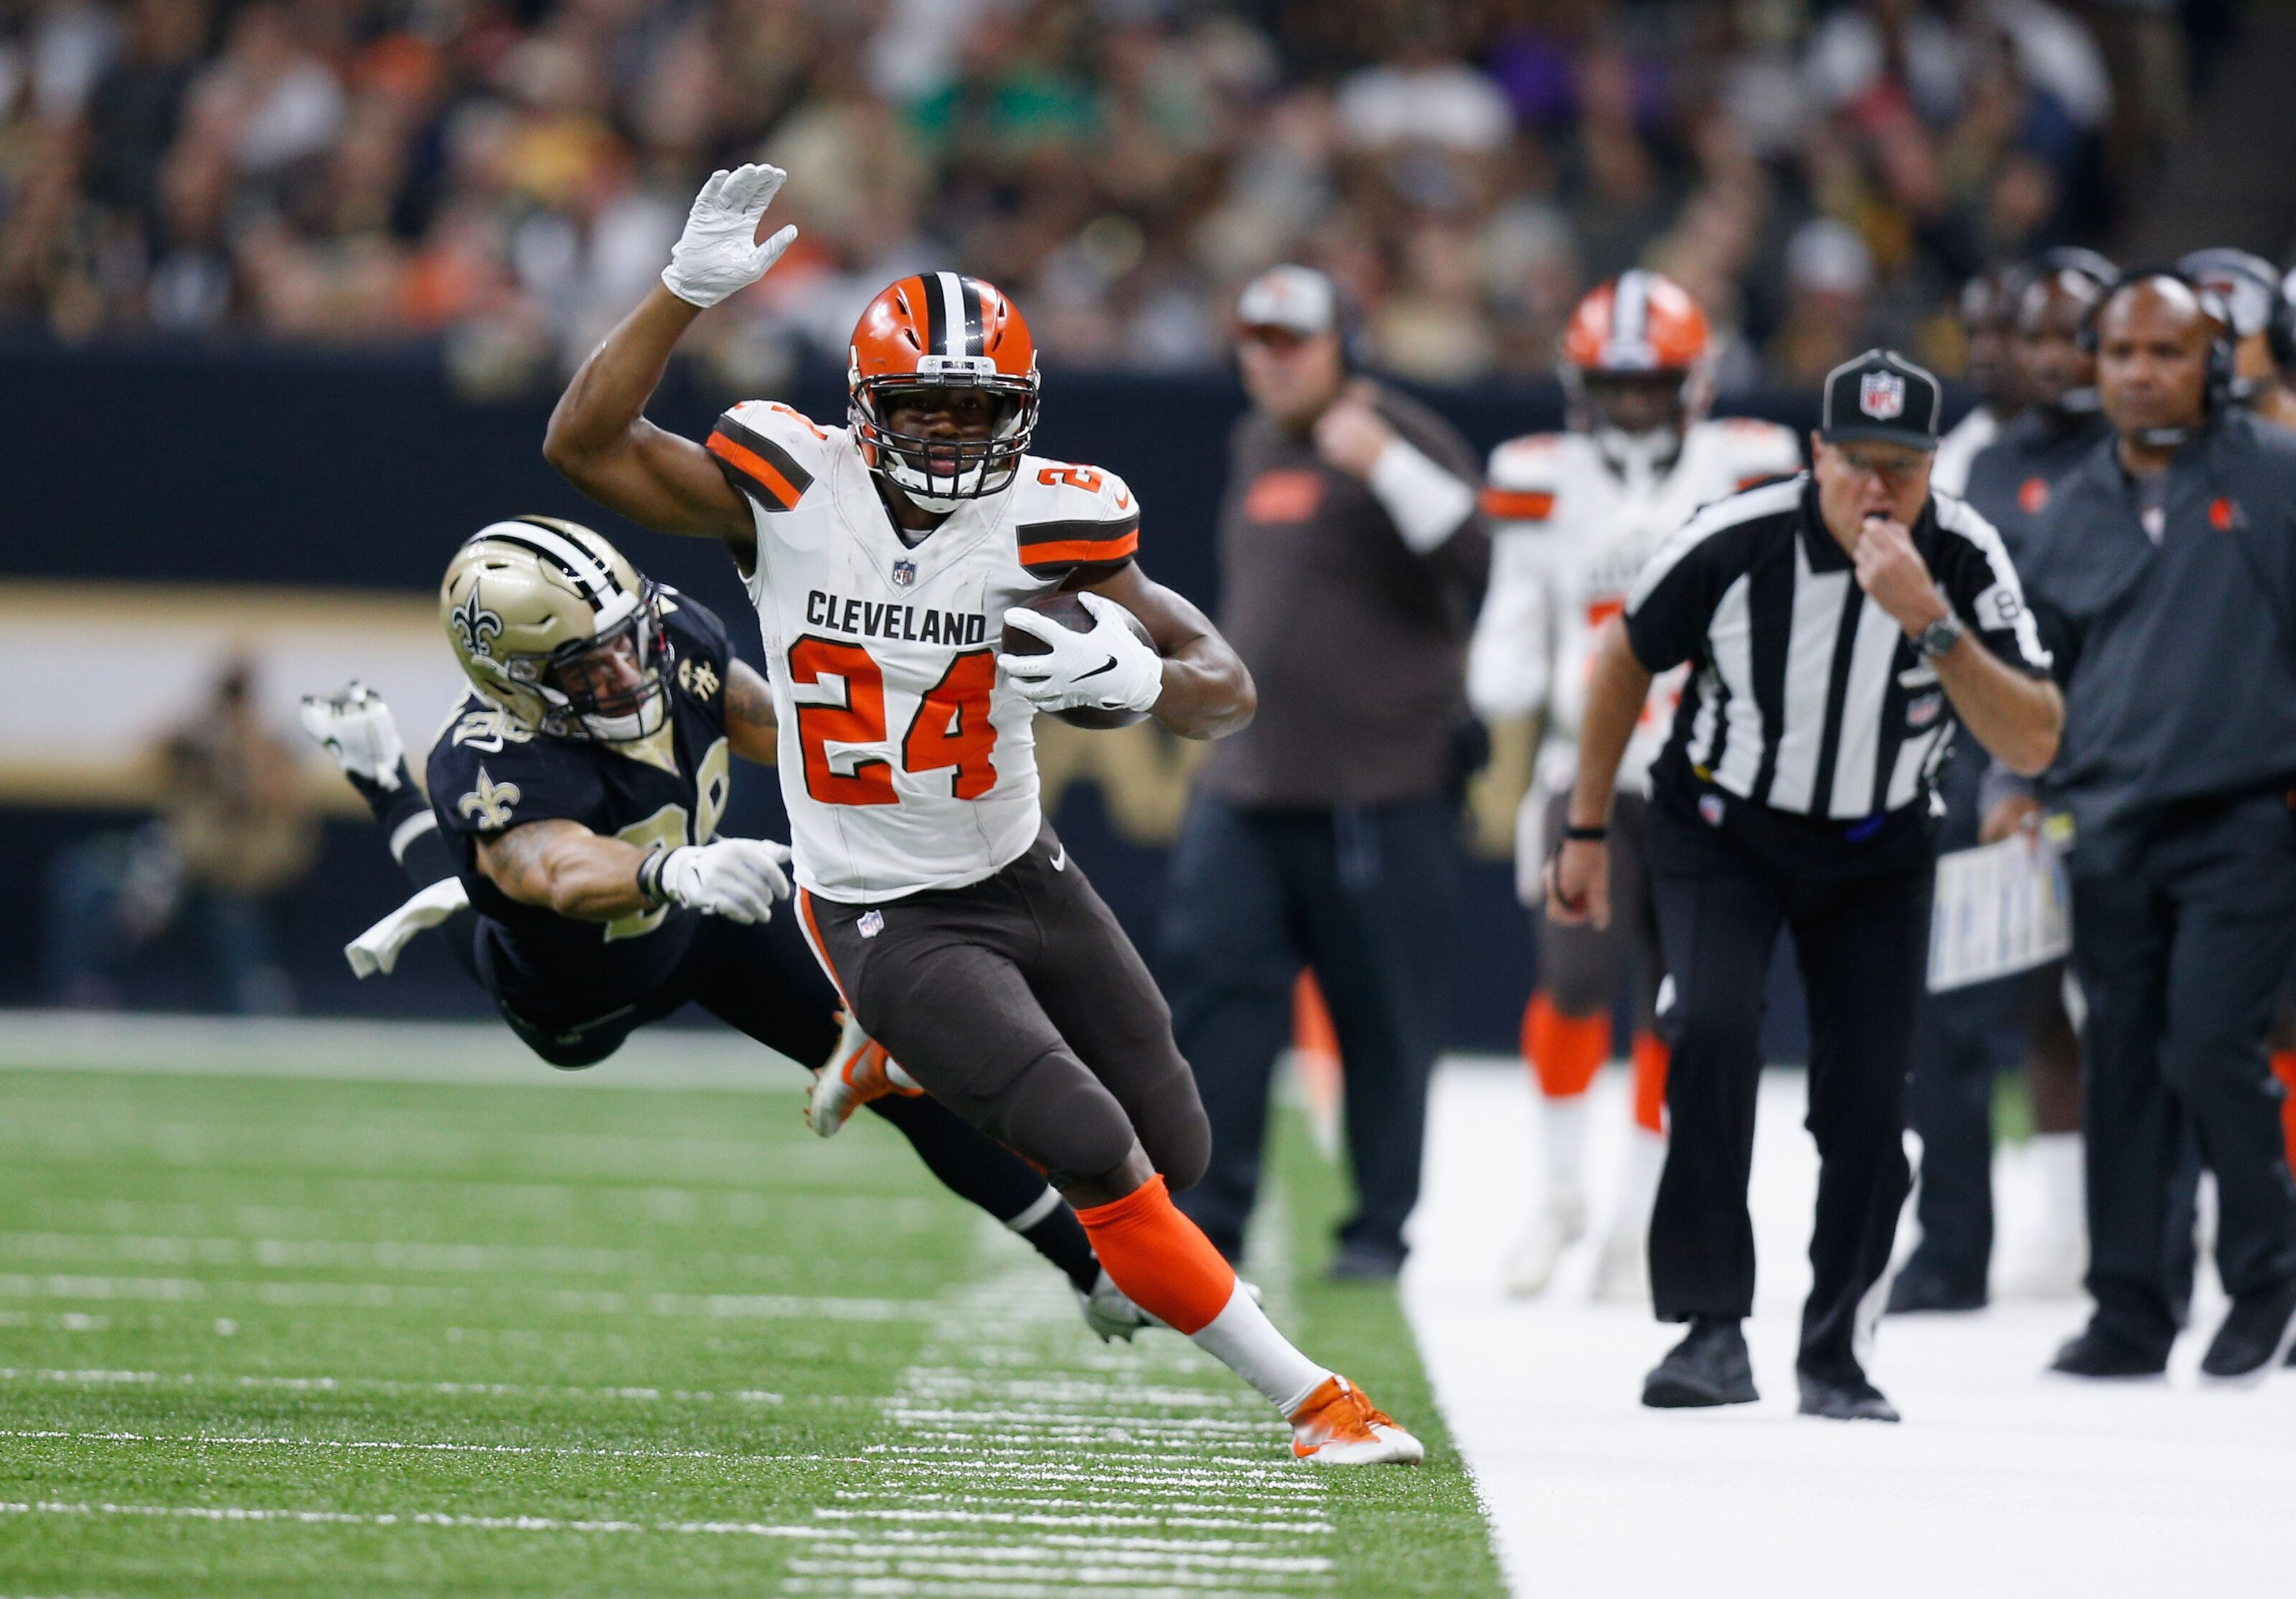 Cleveland Browns: Does it take a CSI crew to watch replays?